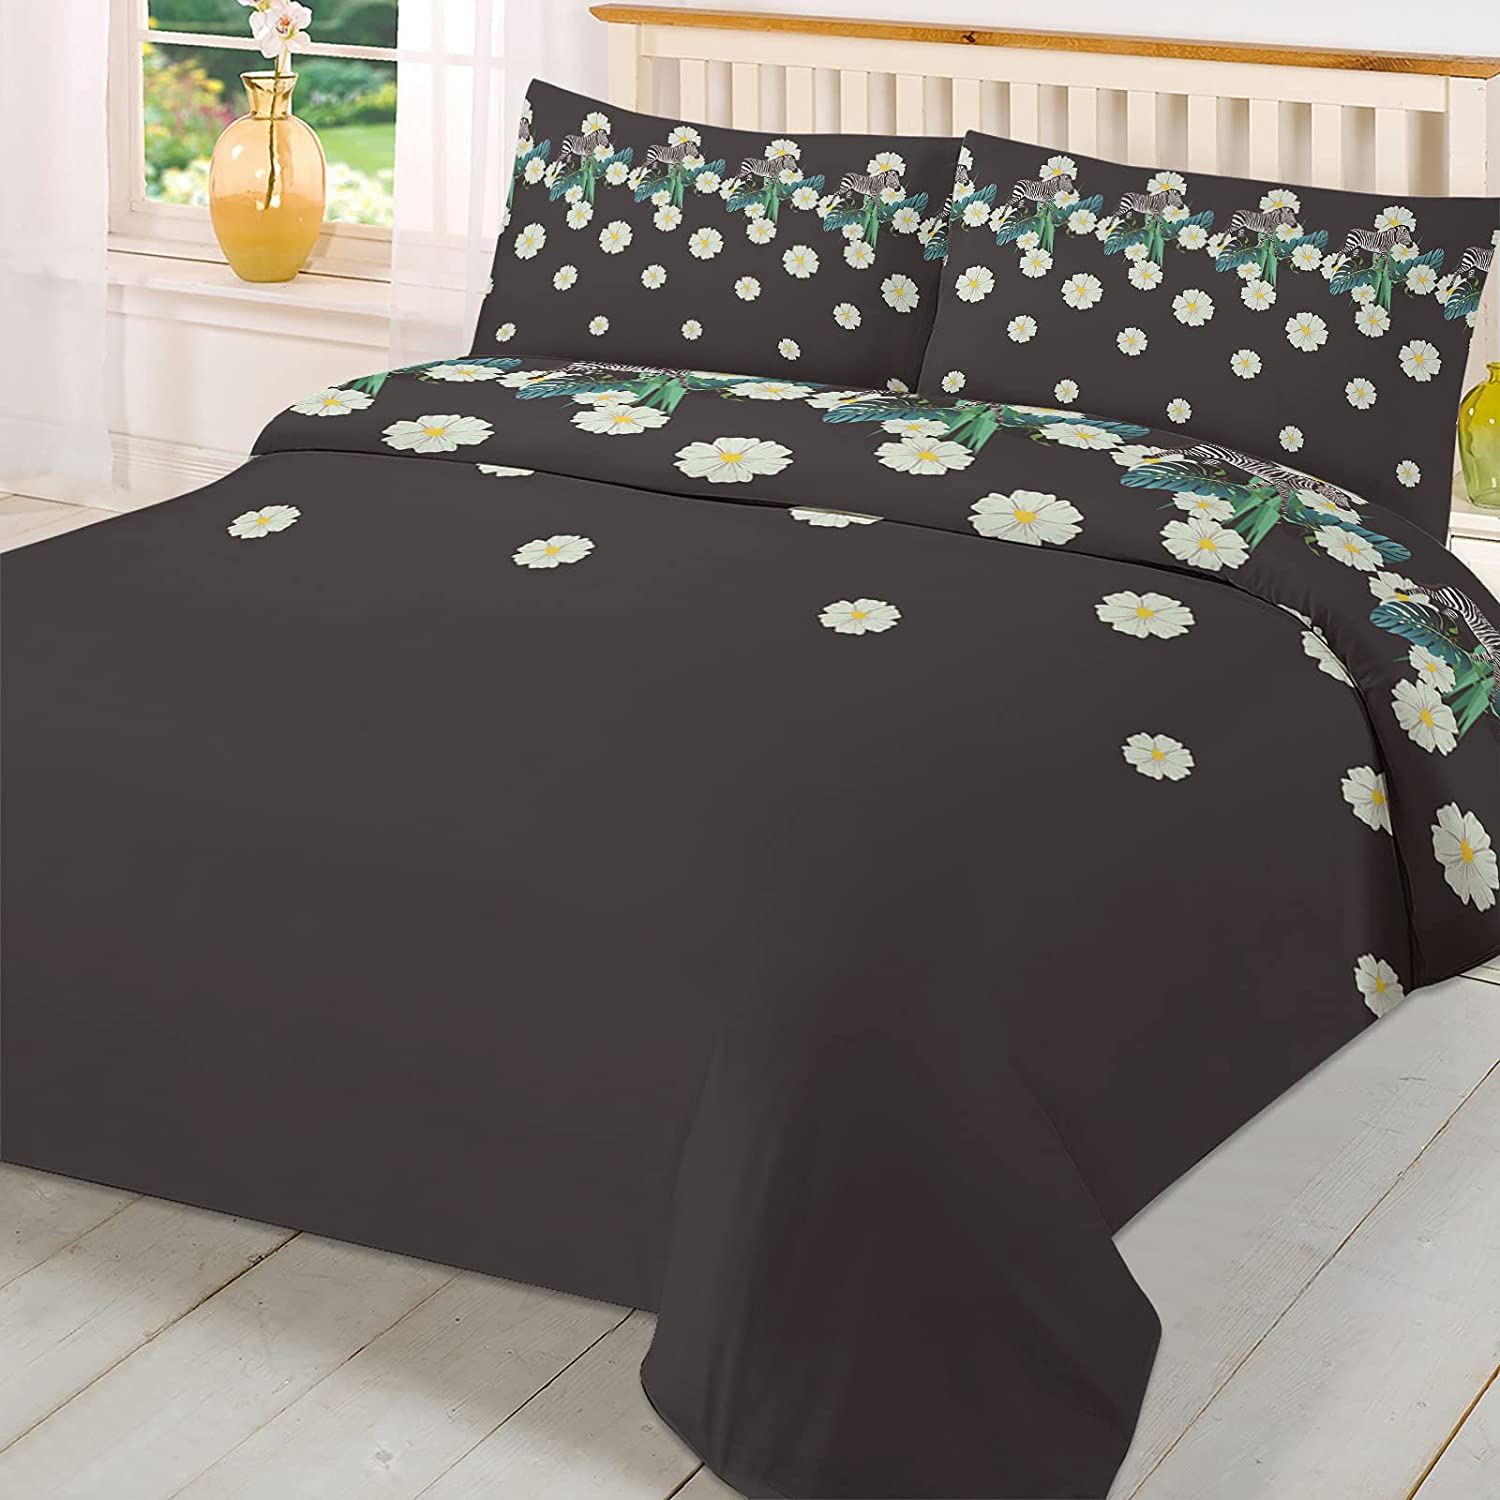 Olivefox service Full Duvet Cover Set Popular brand in the world Zebra Daisies Leaves Green and on